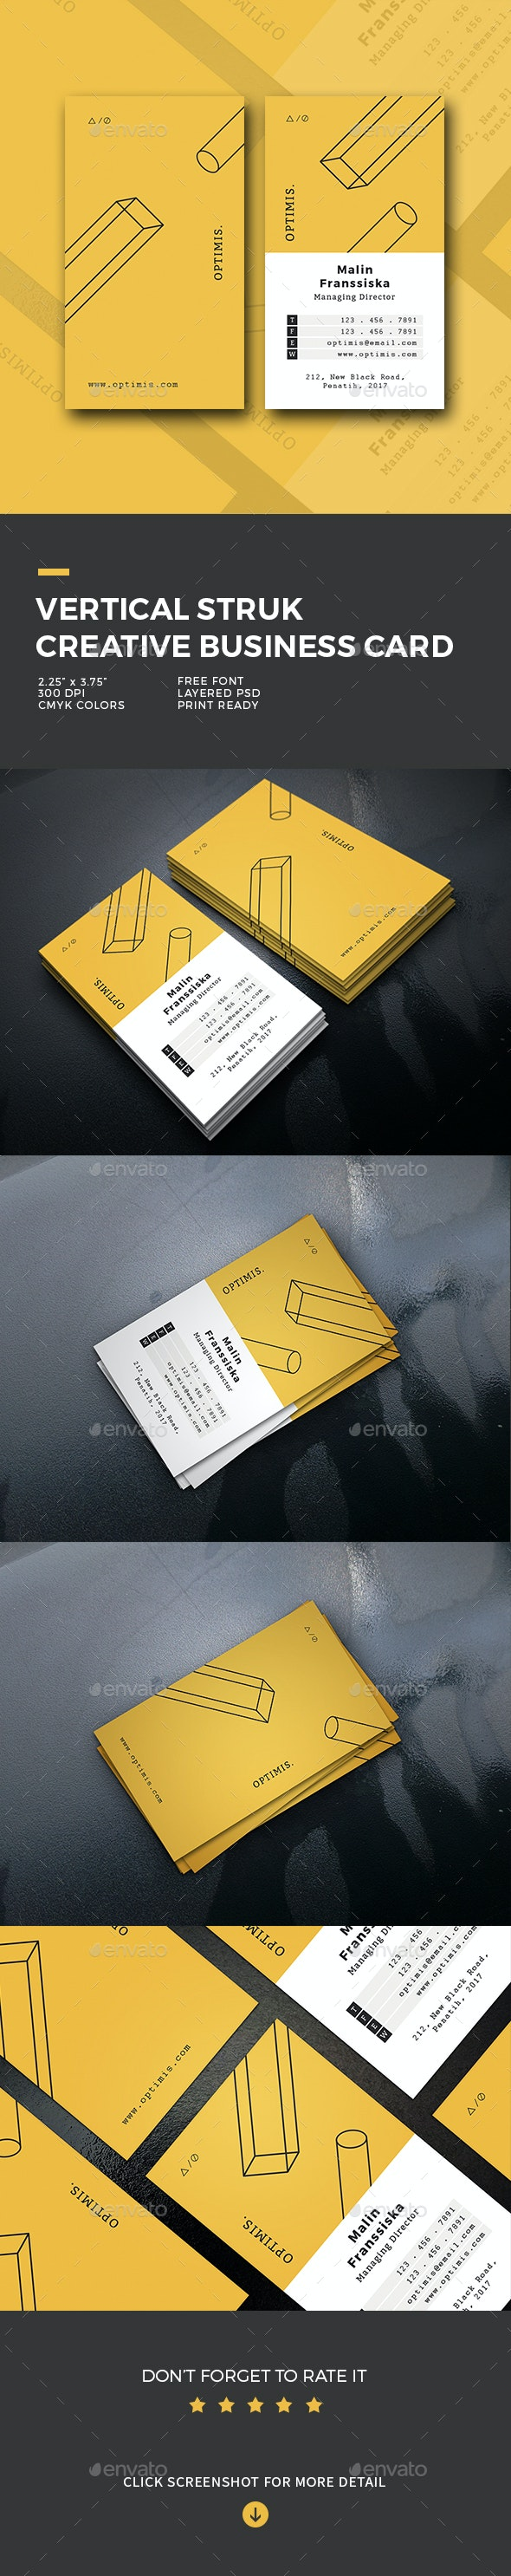 Vertical Struk Creative Business Card - Business Cards Print Templates